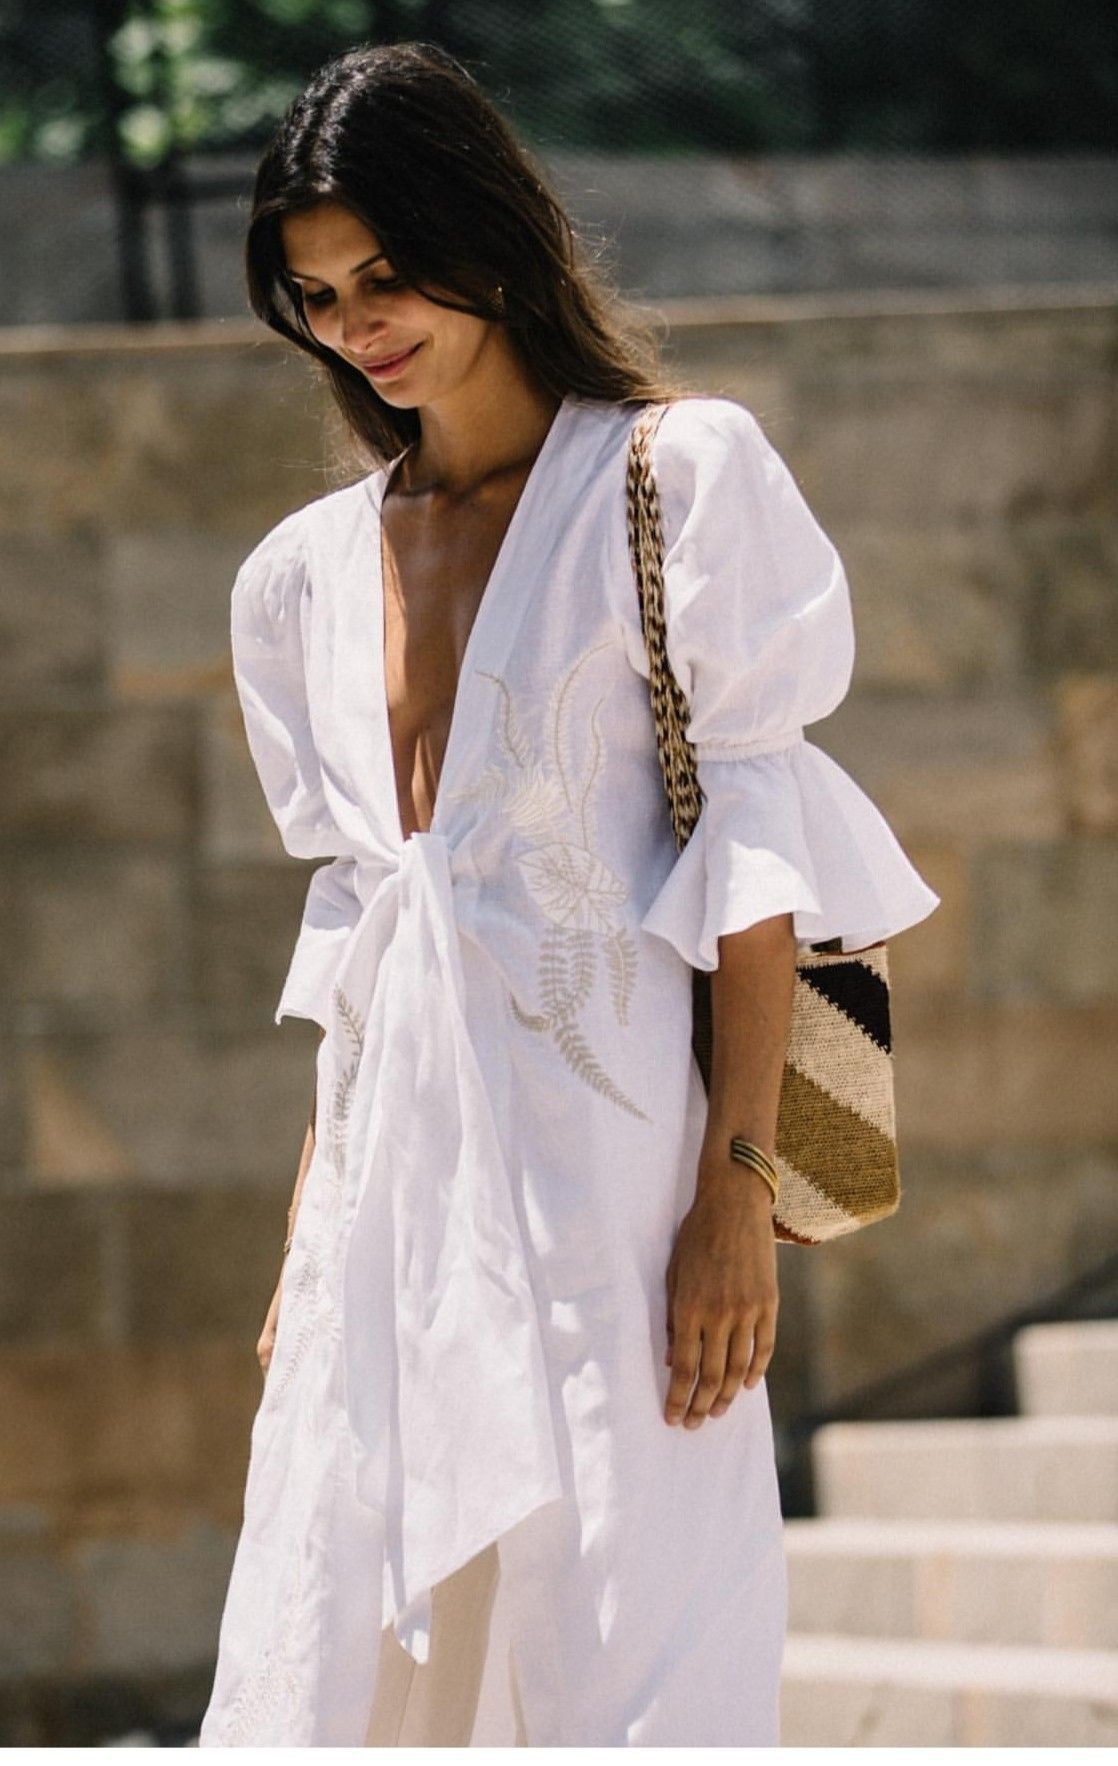 Trendy And Cute Puff Sleeved White Summer Dress Fashion Summer Chic Outfit Fashion Week [ 1766 x 1118 Pixel ]